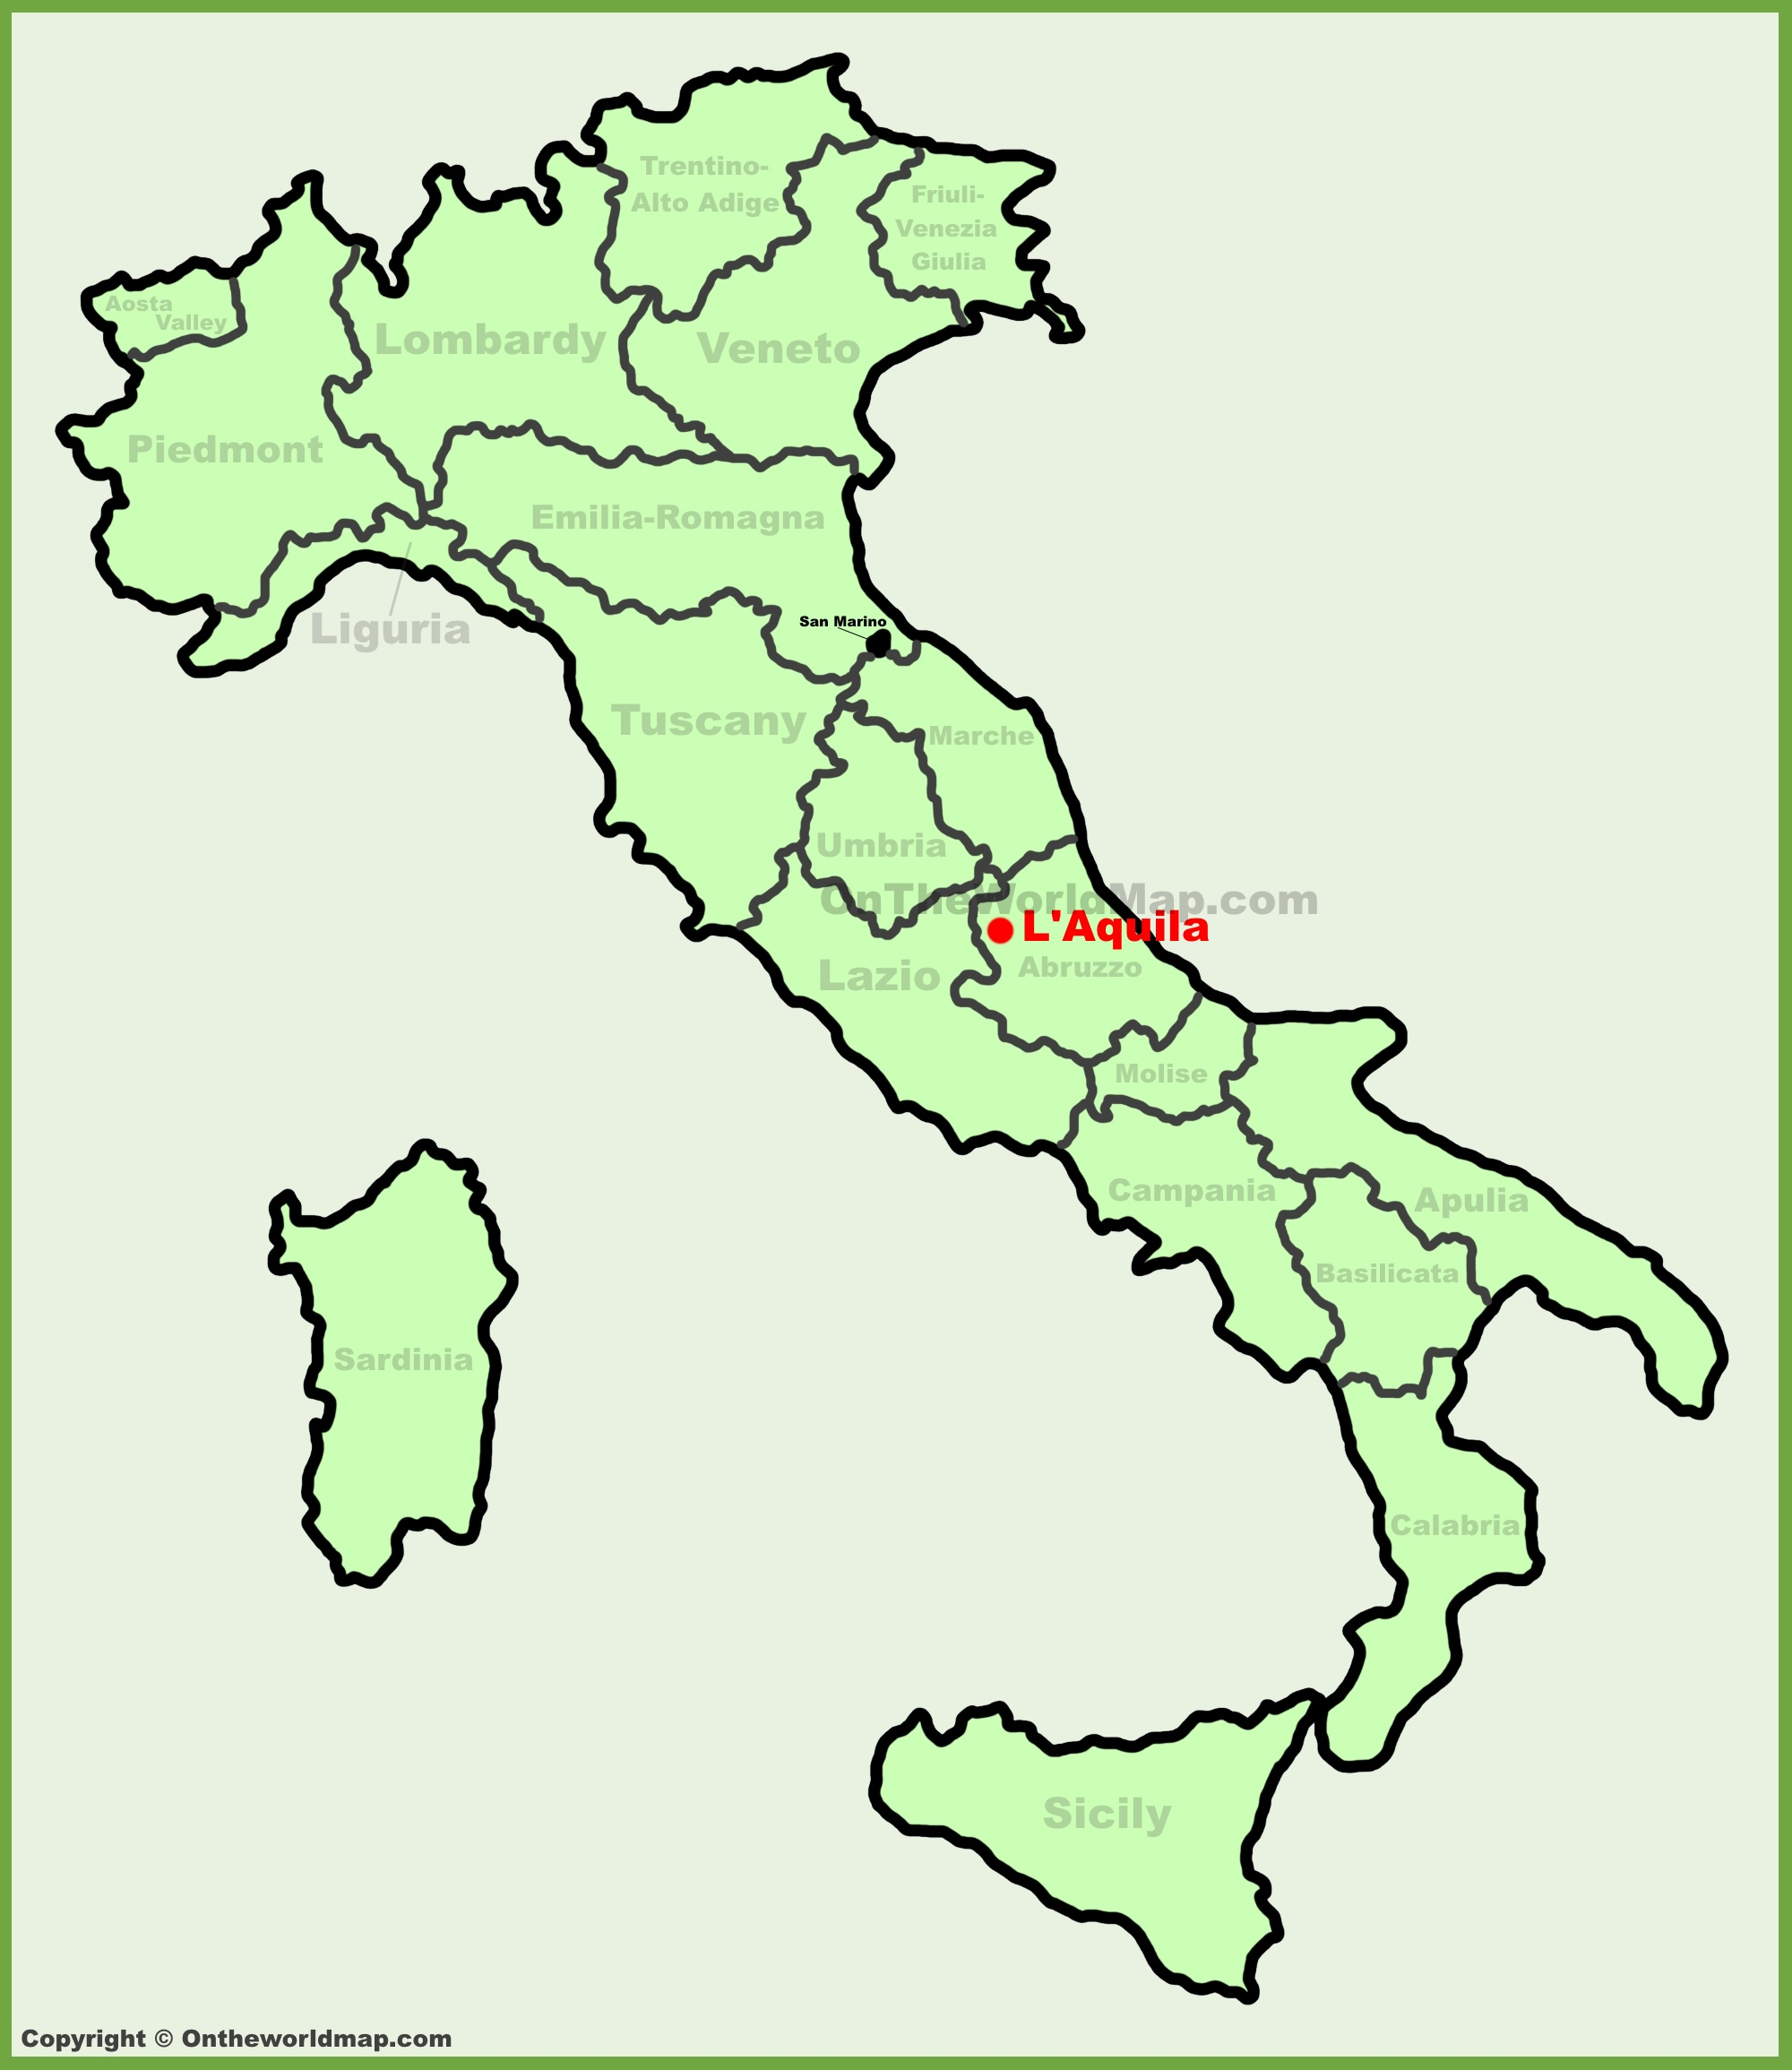 LAquila location on the Italy map